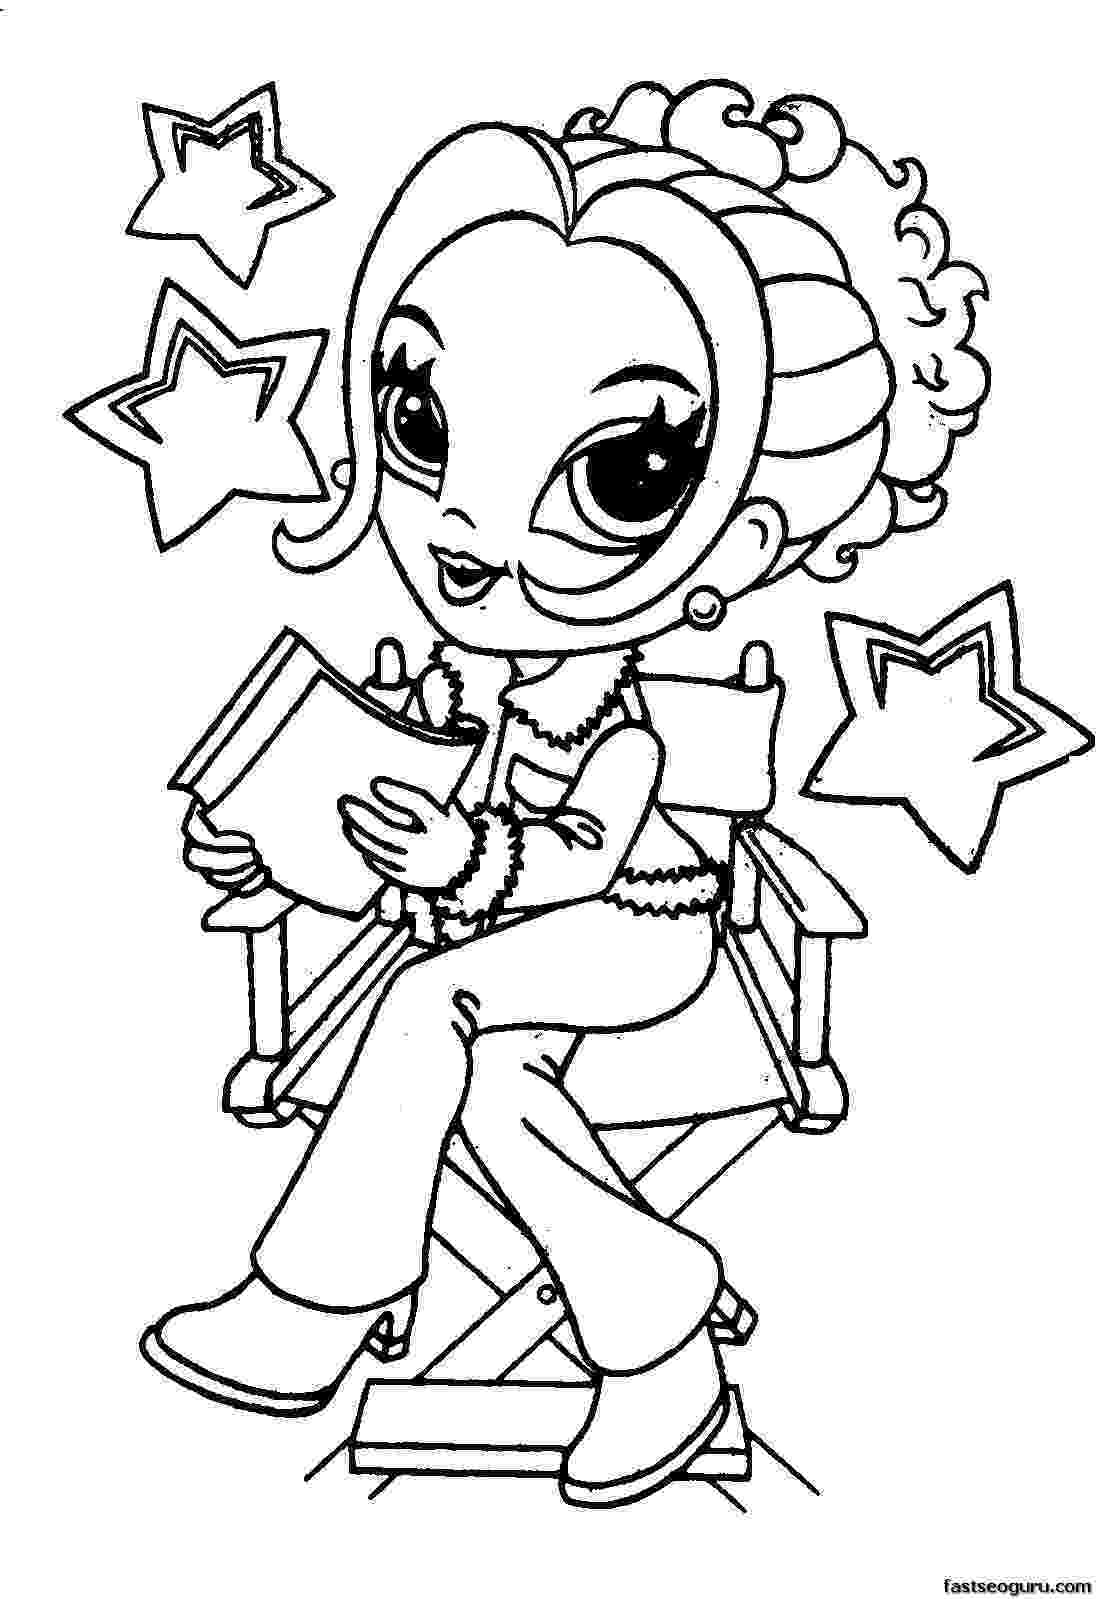 printable pictures for kids free printable goofy coloring pages for kids pictures kids printable for